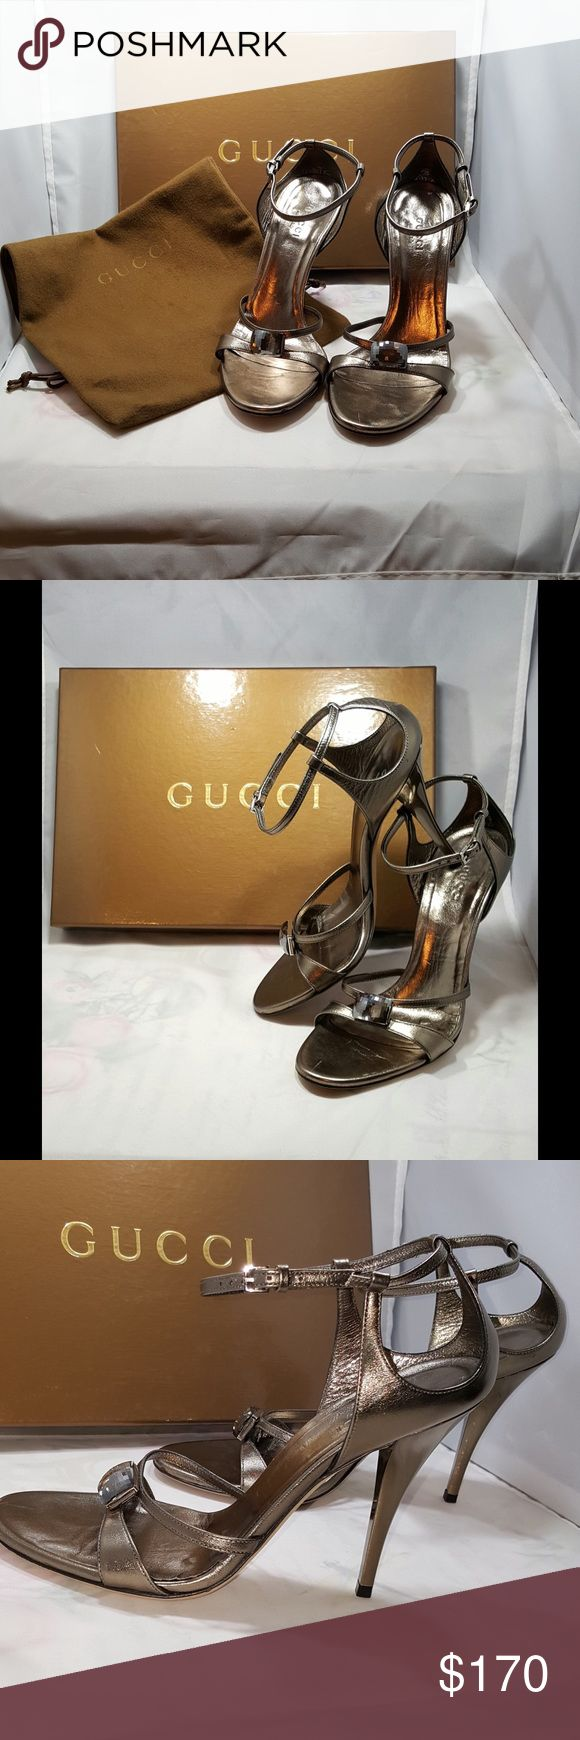 """❤️GUCCI❤️GUCCI👠‼️ SANDALS WOW these are sweet. Well whoever gets these is going to love them‼️ sexy shoes. I wore these 2 times. You can see the right foot is more worn than the left. I should have listened to my dad when he would yell """"PICK UP YOUR FEET WHEN YOU  WALK""""‼️ I am a foot shuffler, 😂 could be worse. I bought these at the GUCCI store at the Houston Galleria. I paid full price for these sweet little girls. I have dust bag and box. These go for a lot more than I'm asking on eBay…"""